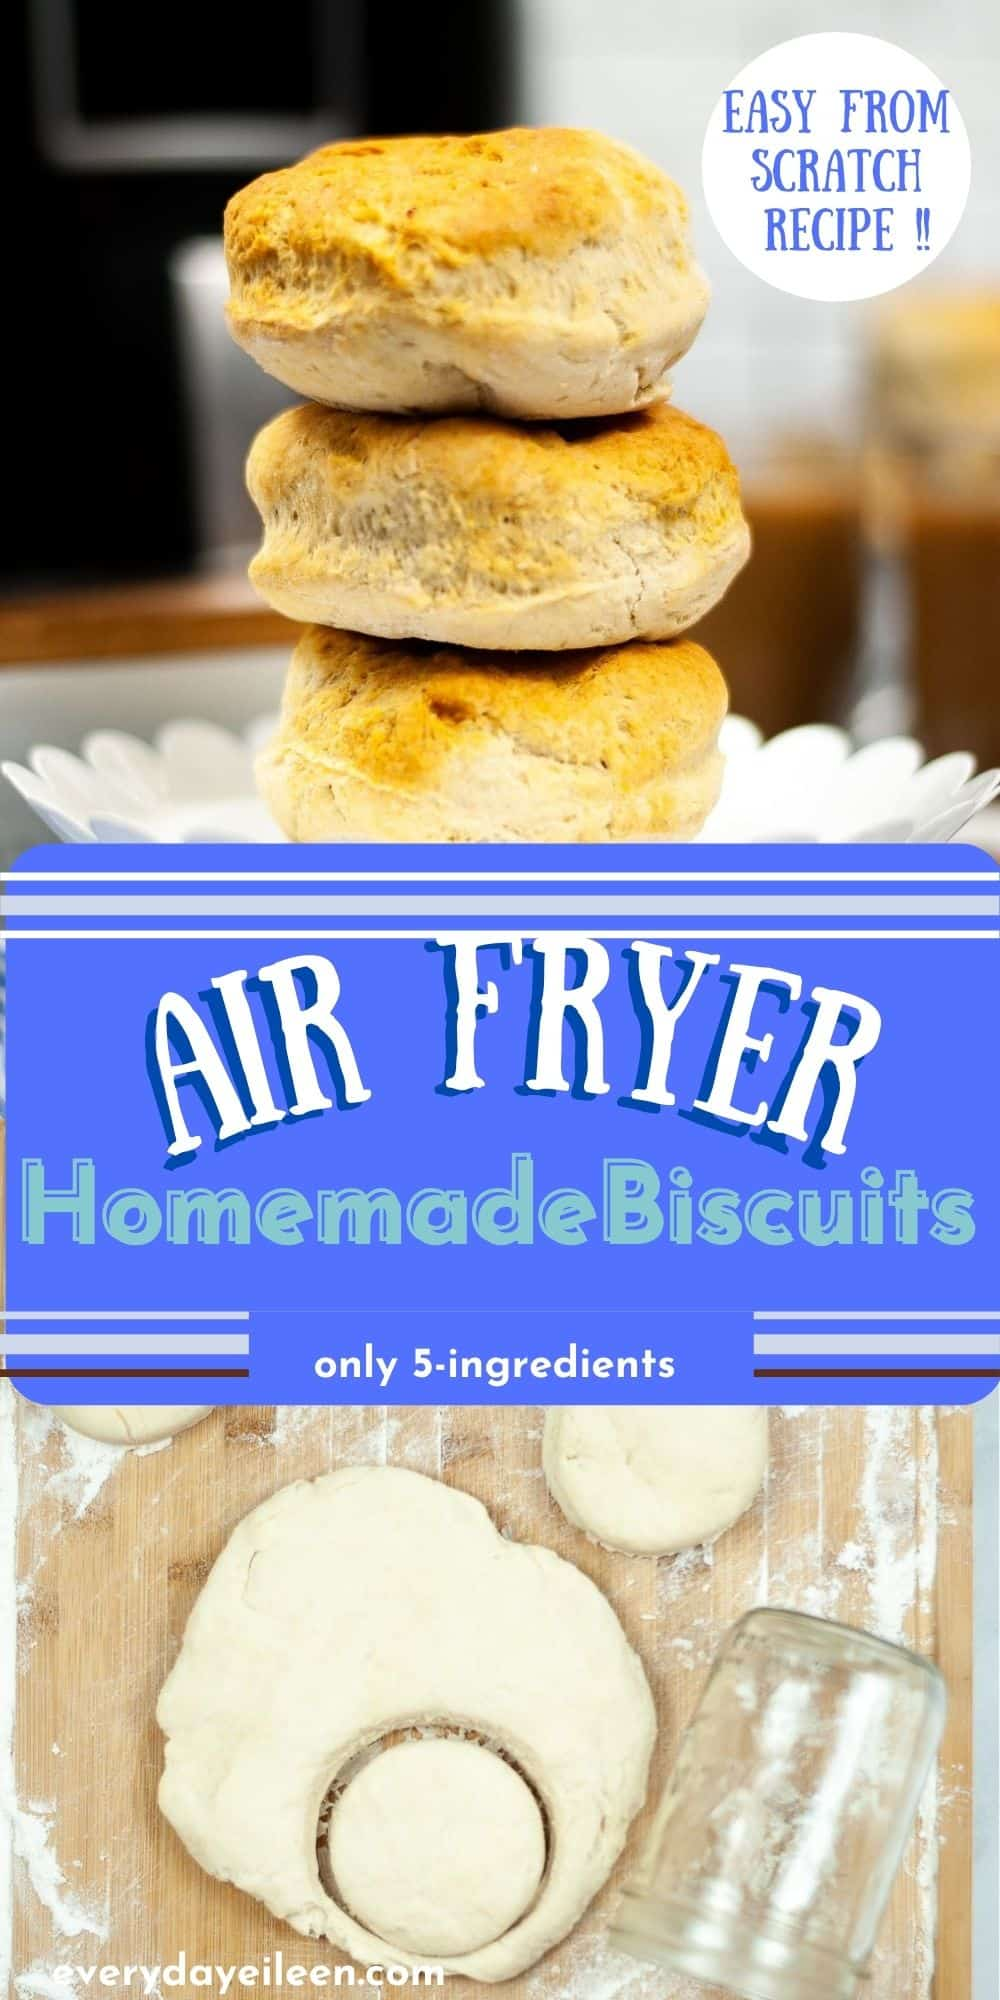 Enjoy homemade air fryer biscuits that are light and fluffy from scratch biscuits. With just 5 ingredients these biscuits are made in under 30 minutes and so much better than canned biscuits.  via @/everydayeileen/